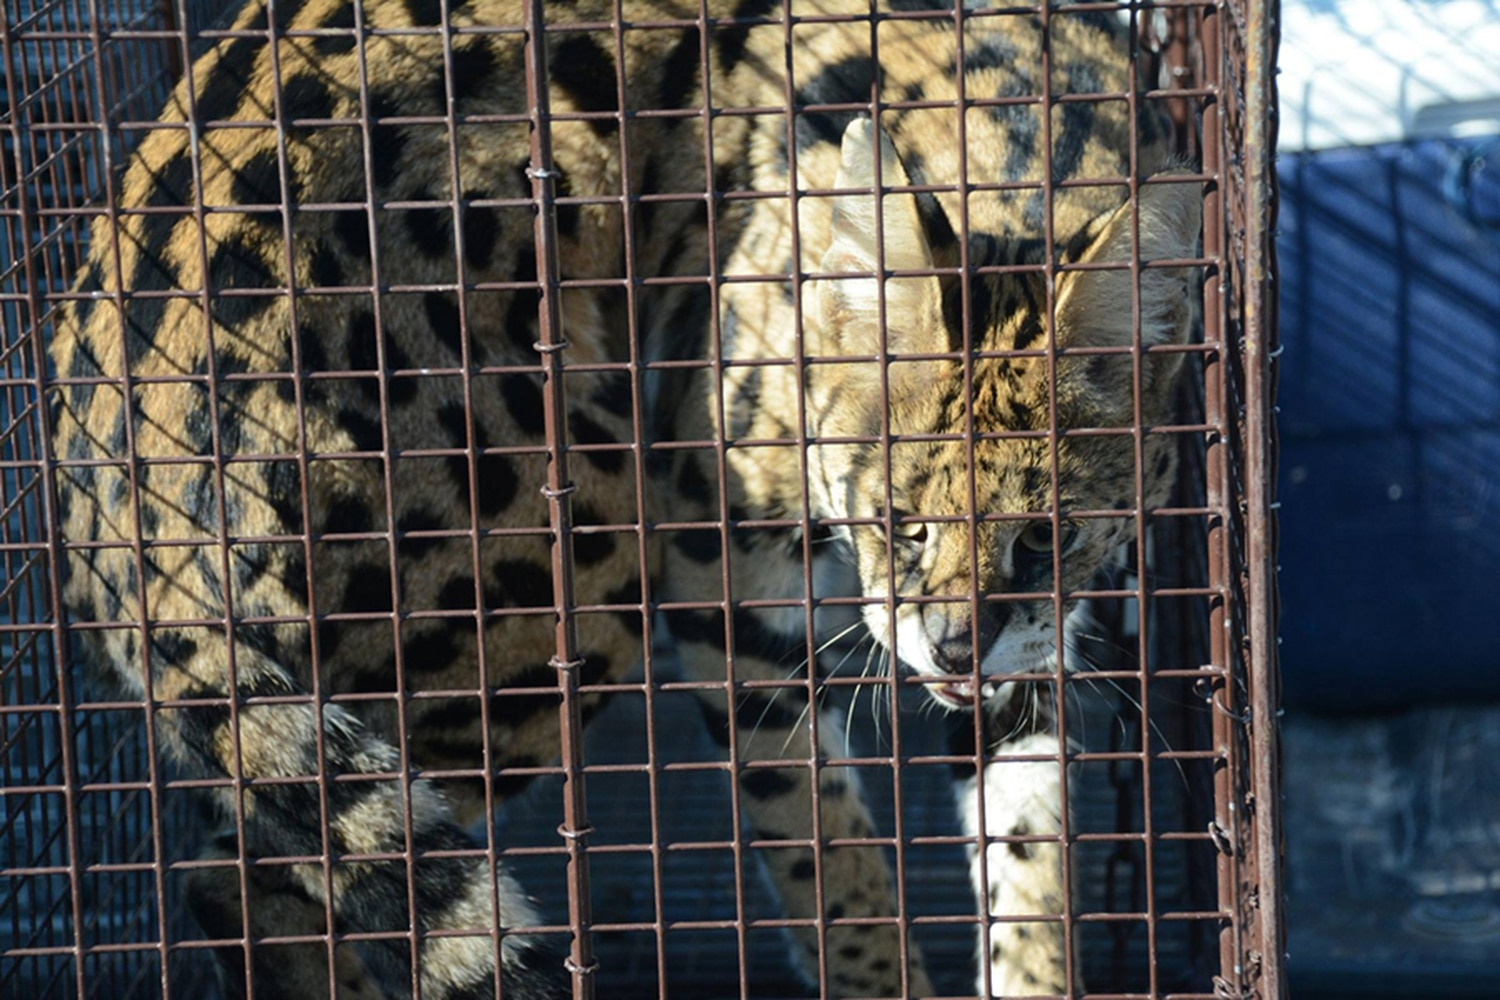 This serval cat was captured Thursday by NMDGF in a live cage